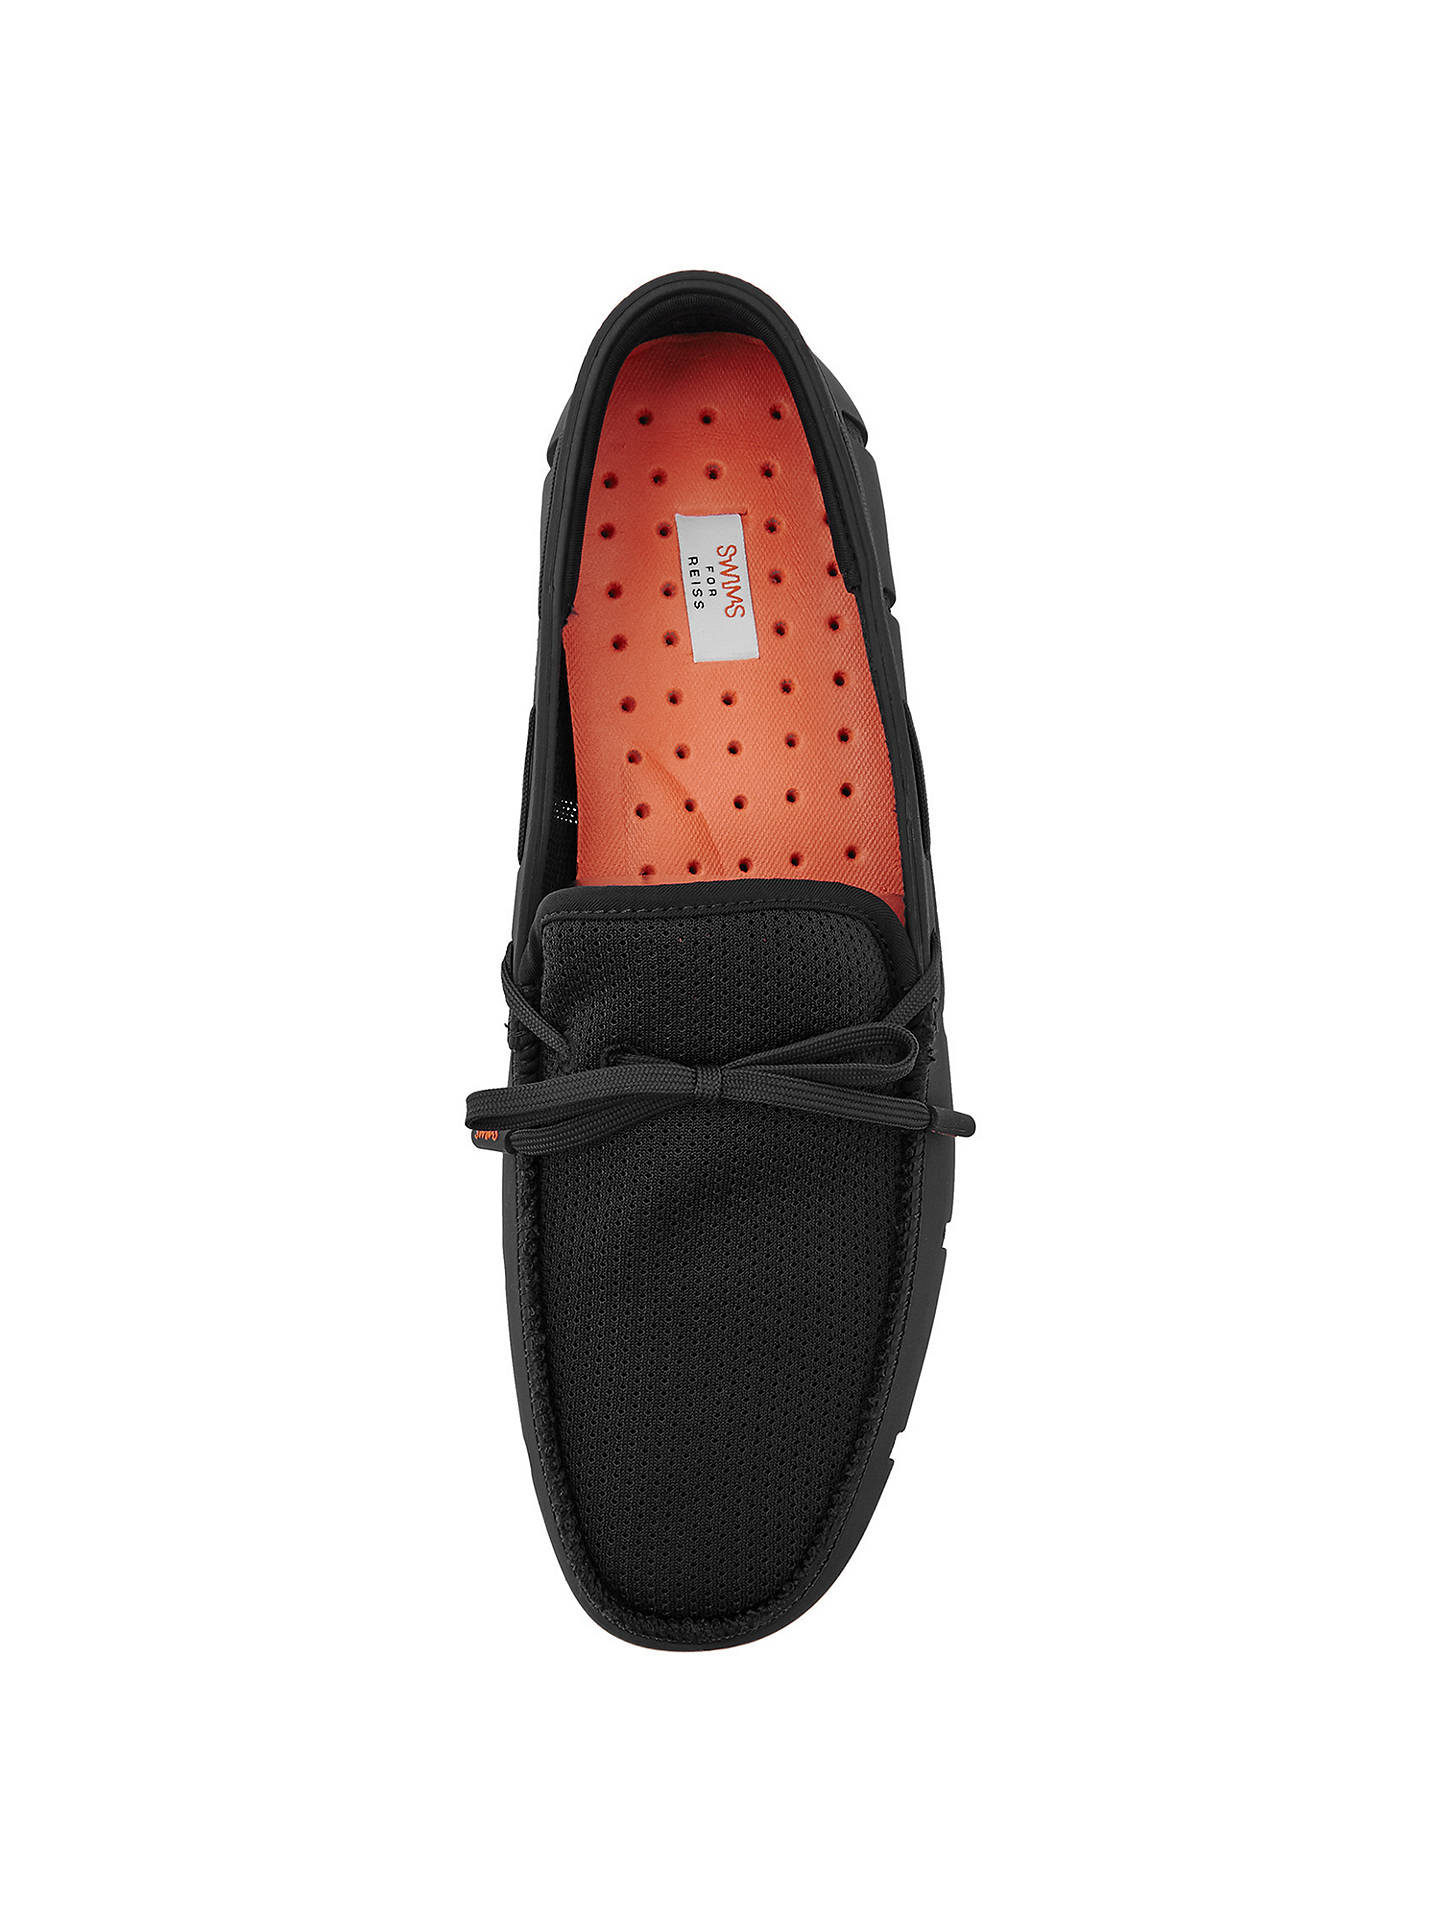 740d9e5a396ca ... Buy Reiss Swims Waterproof Lace Up Loafers, Black, 41 Online at  johnlewis.com